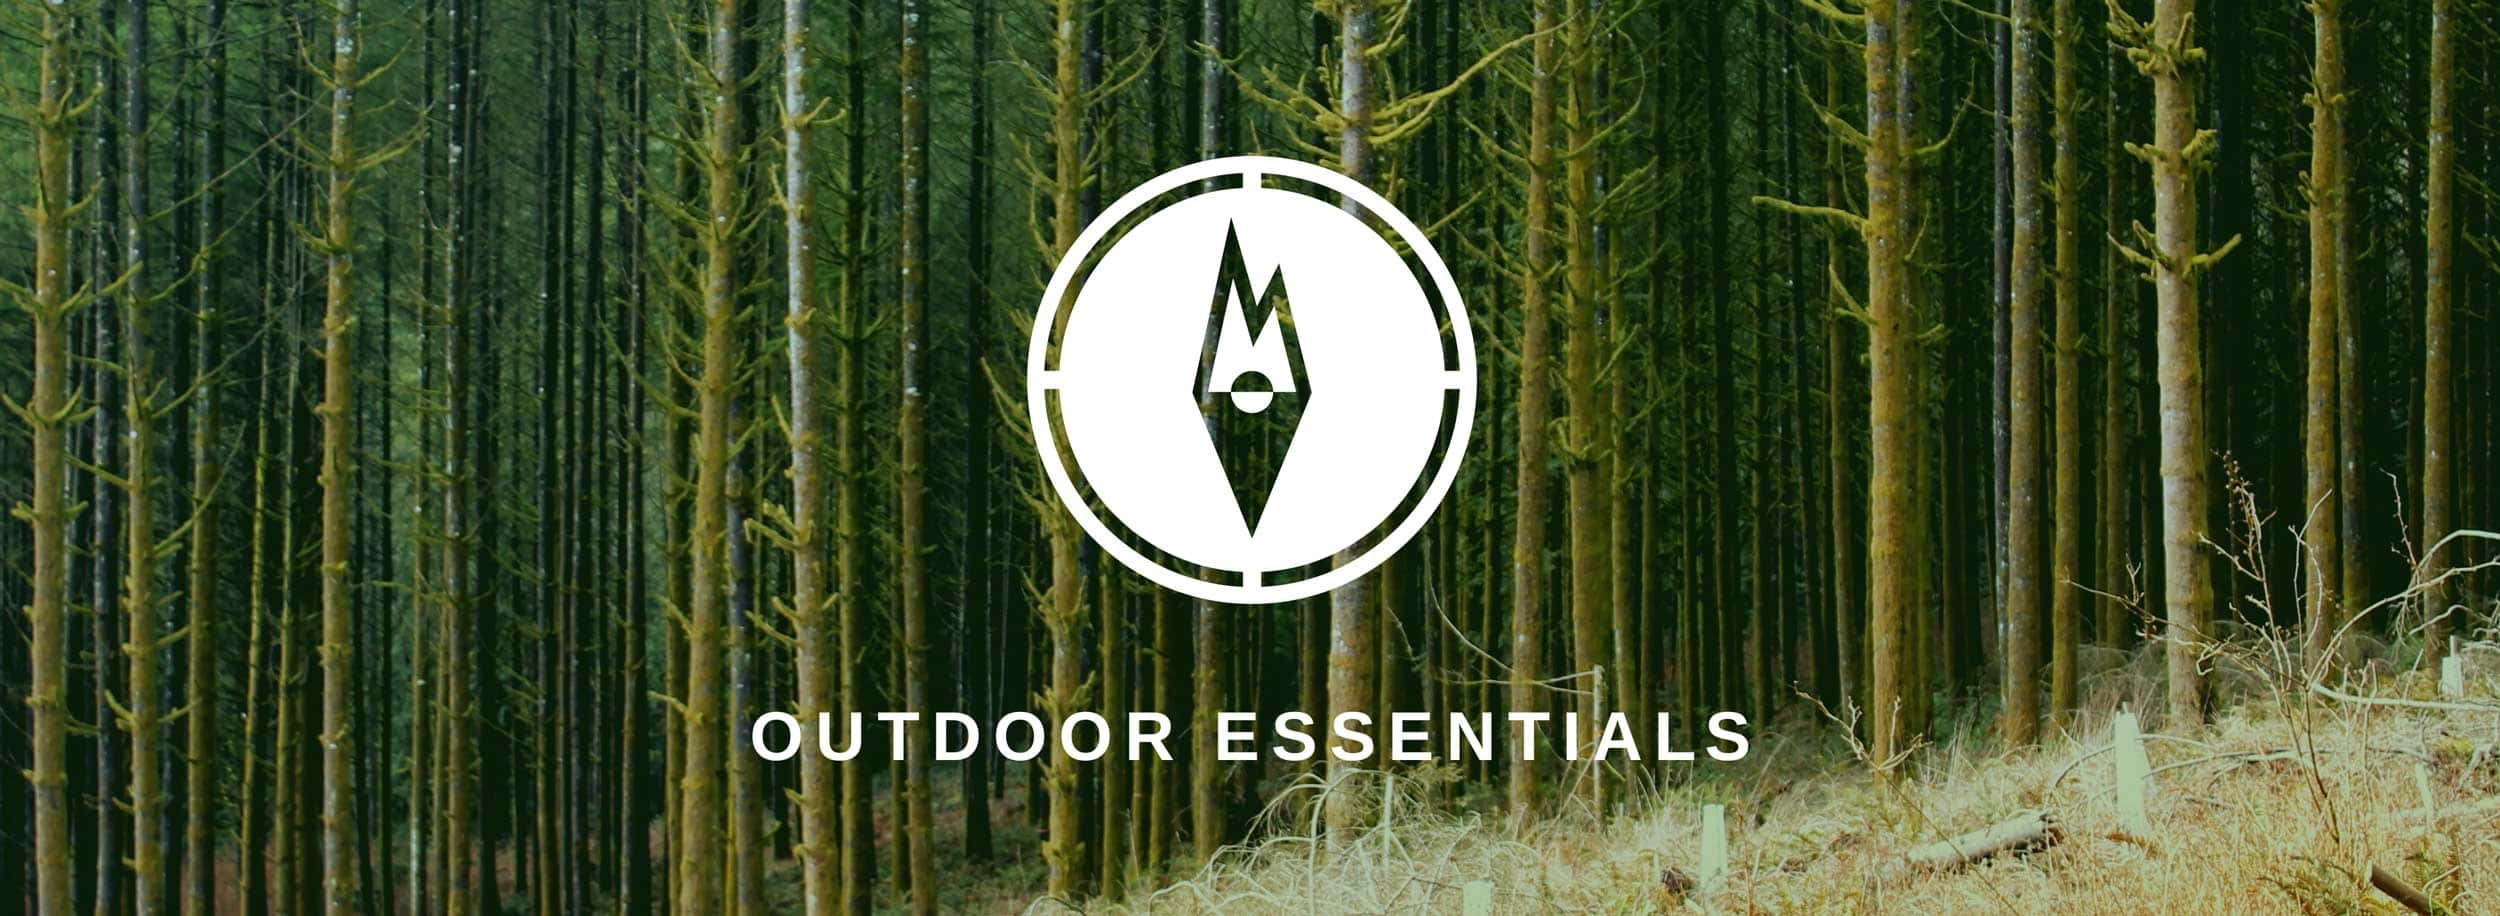 Mountain + Compass visuals form a unique symbol for Outdoor Essentials brand © LET'S PANDA